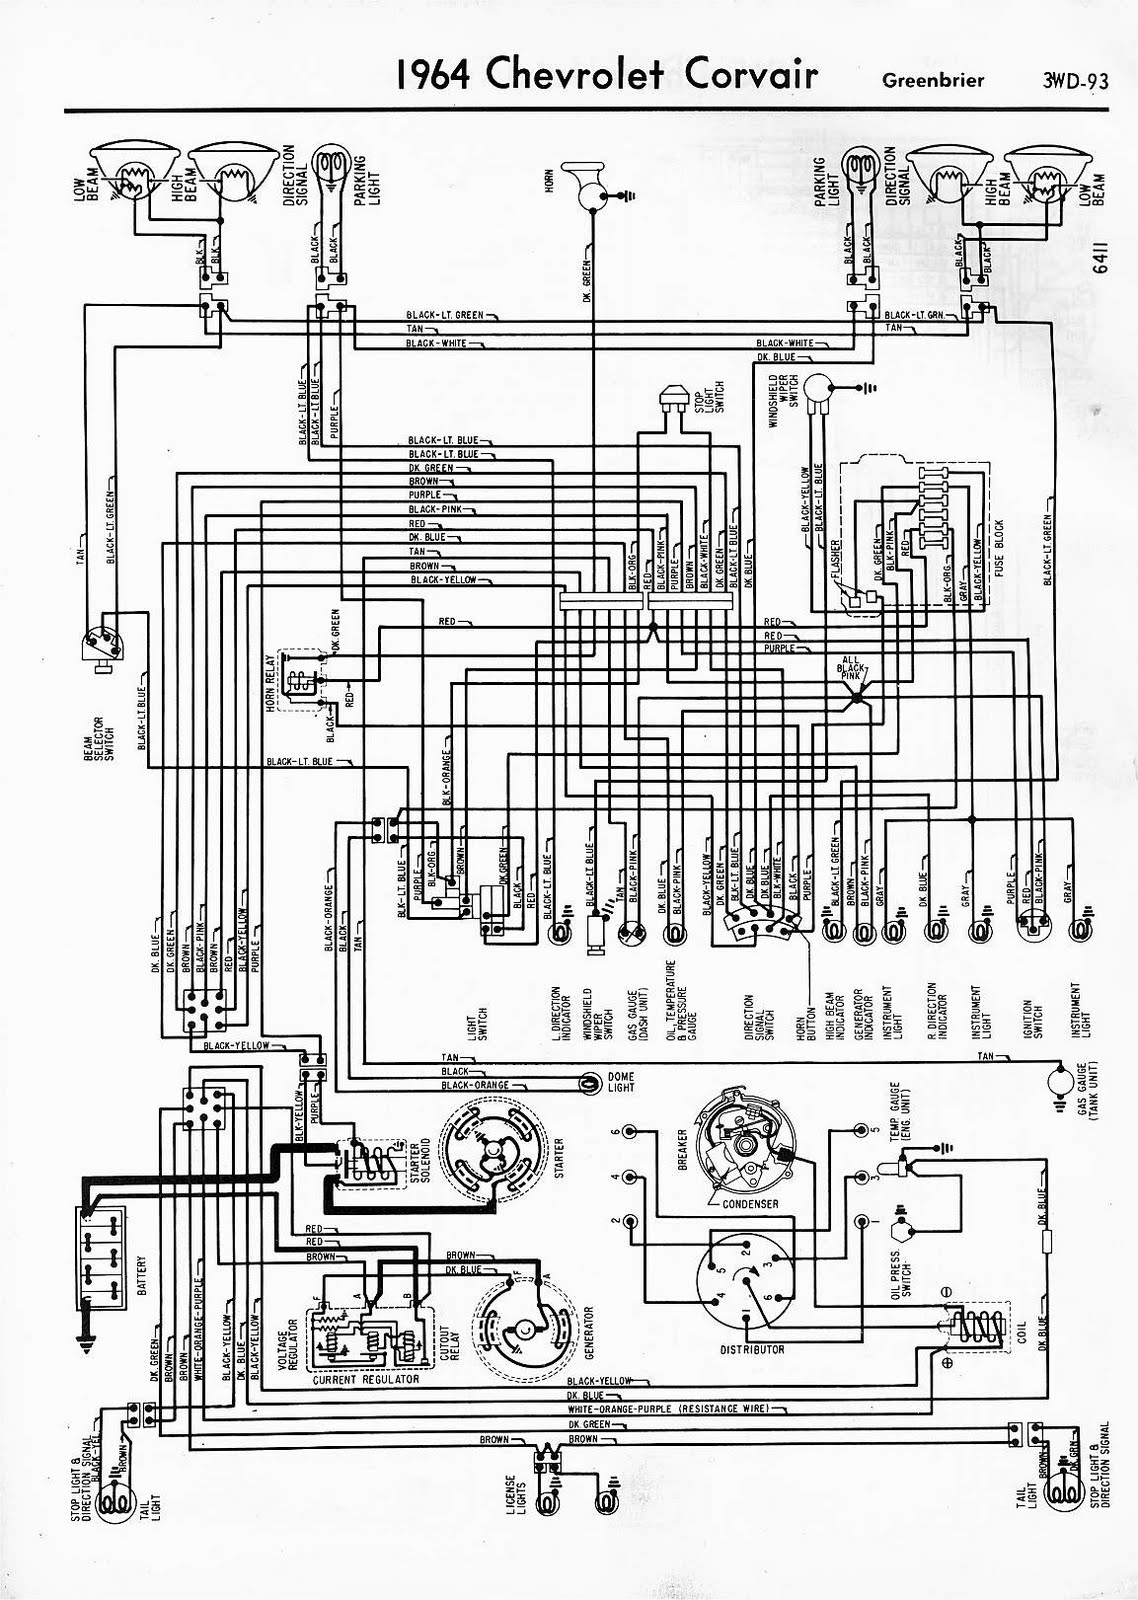 1955 chevy fuel gauge wiring diagram html with 1964 Chevrolet Corvair Greenbrier on 4011586 Fuel Gauge Blows Fuse as well Temperature Gauge Wiring Diagram 1957 Chevy Car besides Chevrolet V8 Trucks 1981 1987 as well 1957 Chevy Wiring Diagram Exploded View in addition 1964 Chevrolet Corvair Greenbrier.